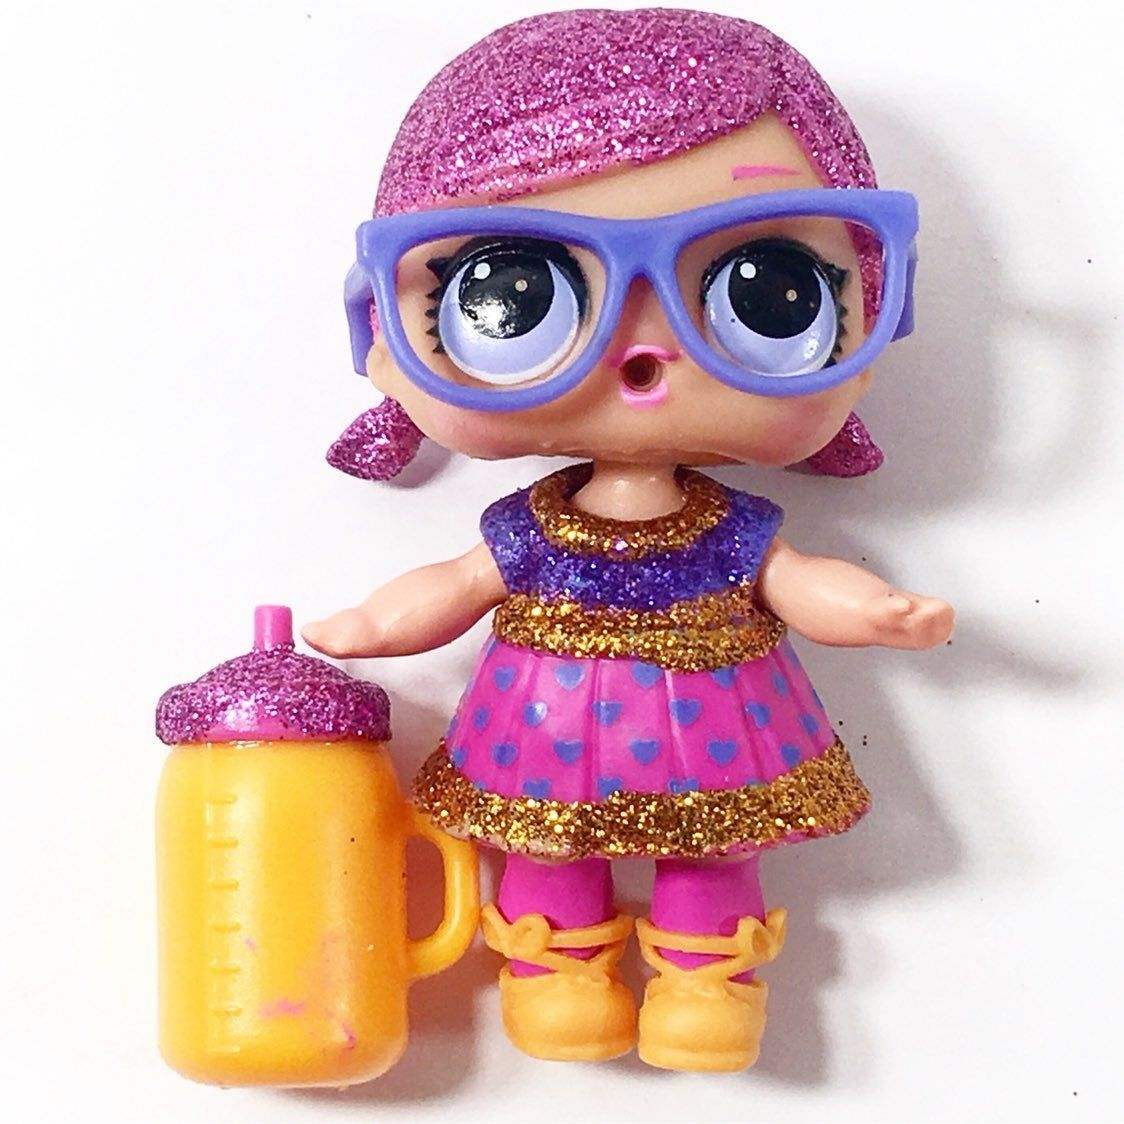 Sold As Pictured Played With Condition Some Accessories May Be Missing And Might Have Some Scuffs Here And Then Bund Lol Dolls Christmas Dolls Shopkins Season